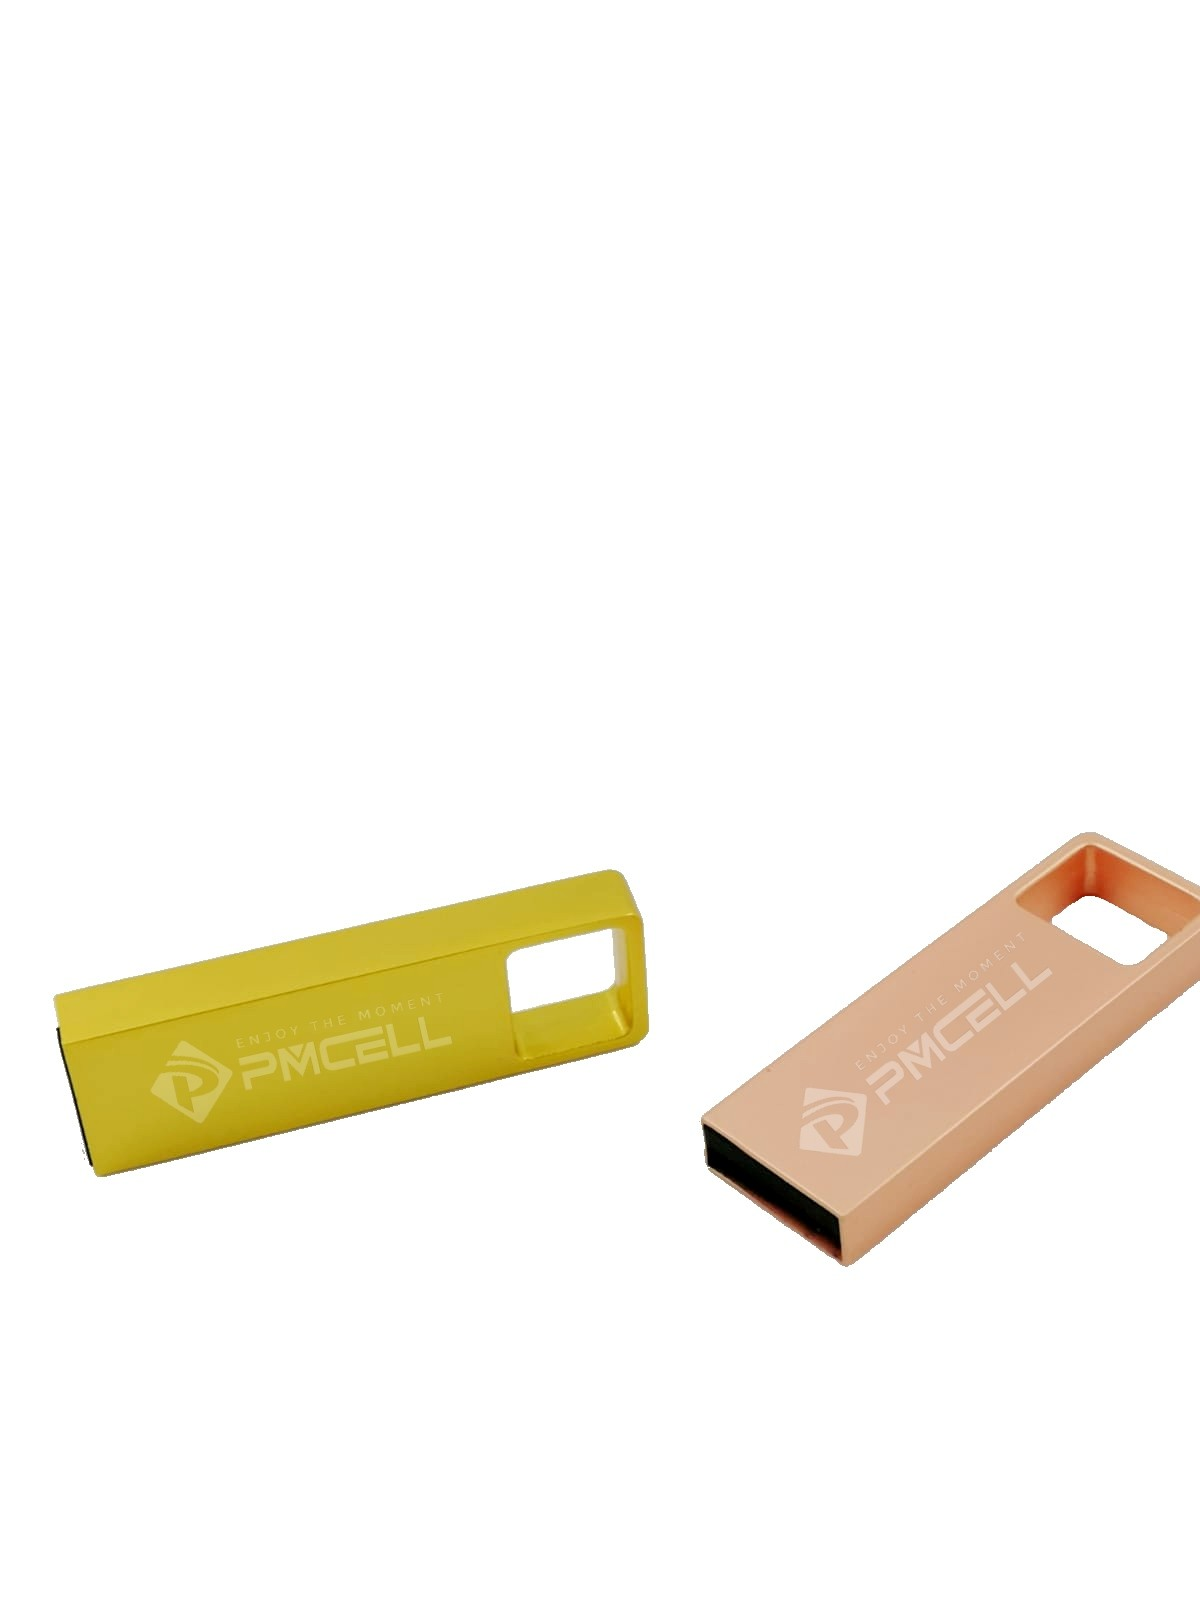 Pendrive | 16GB | PMCELL PN-22